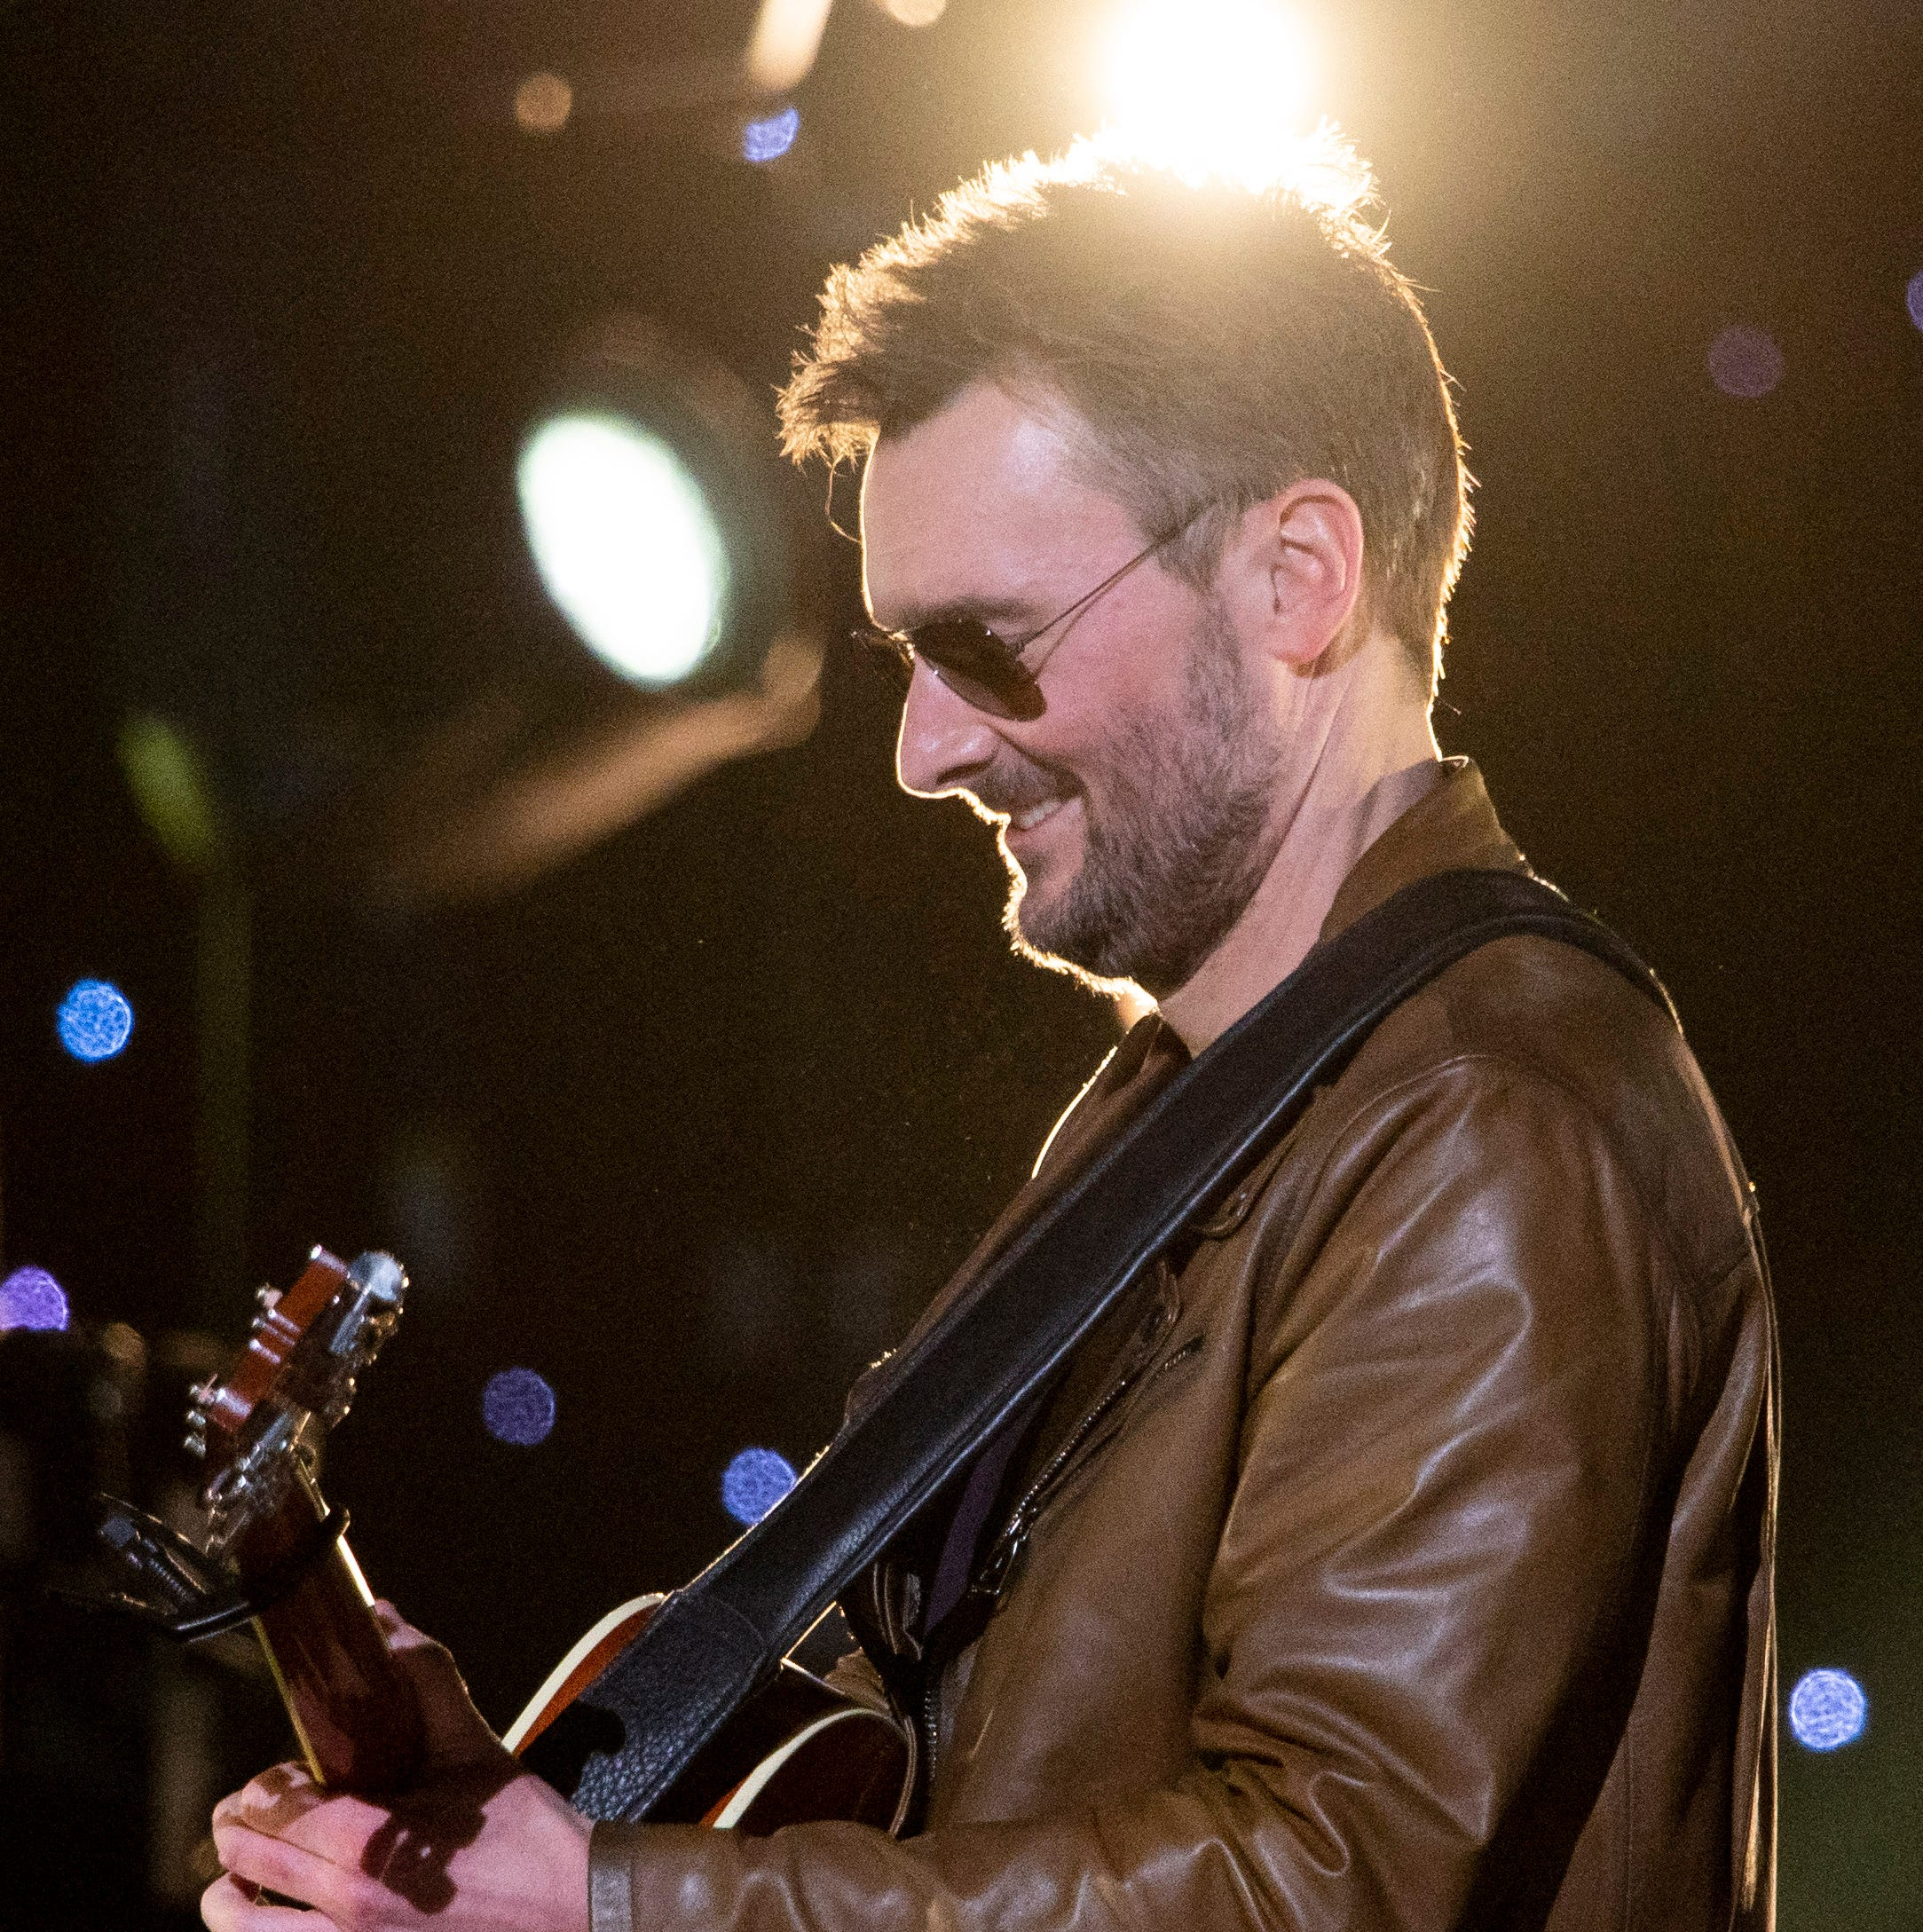 Eric Church shows his love for Detroit at Little Caesars Arena shows